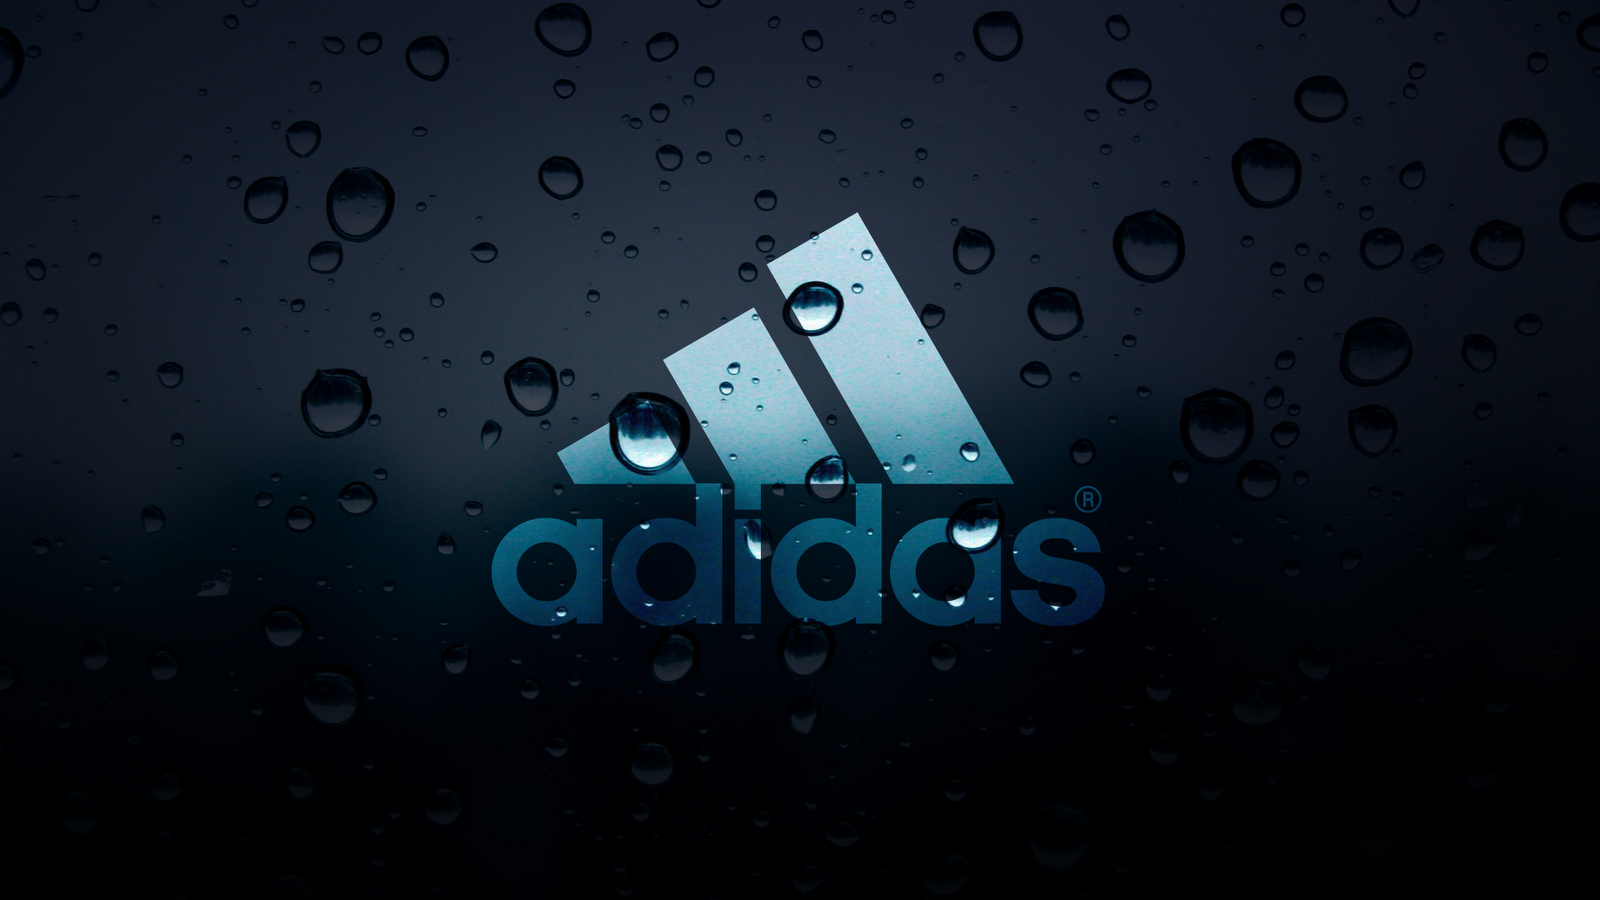 Adidas Wallpapers Free Download